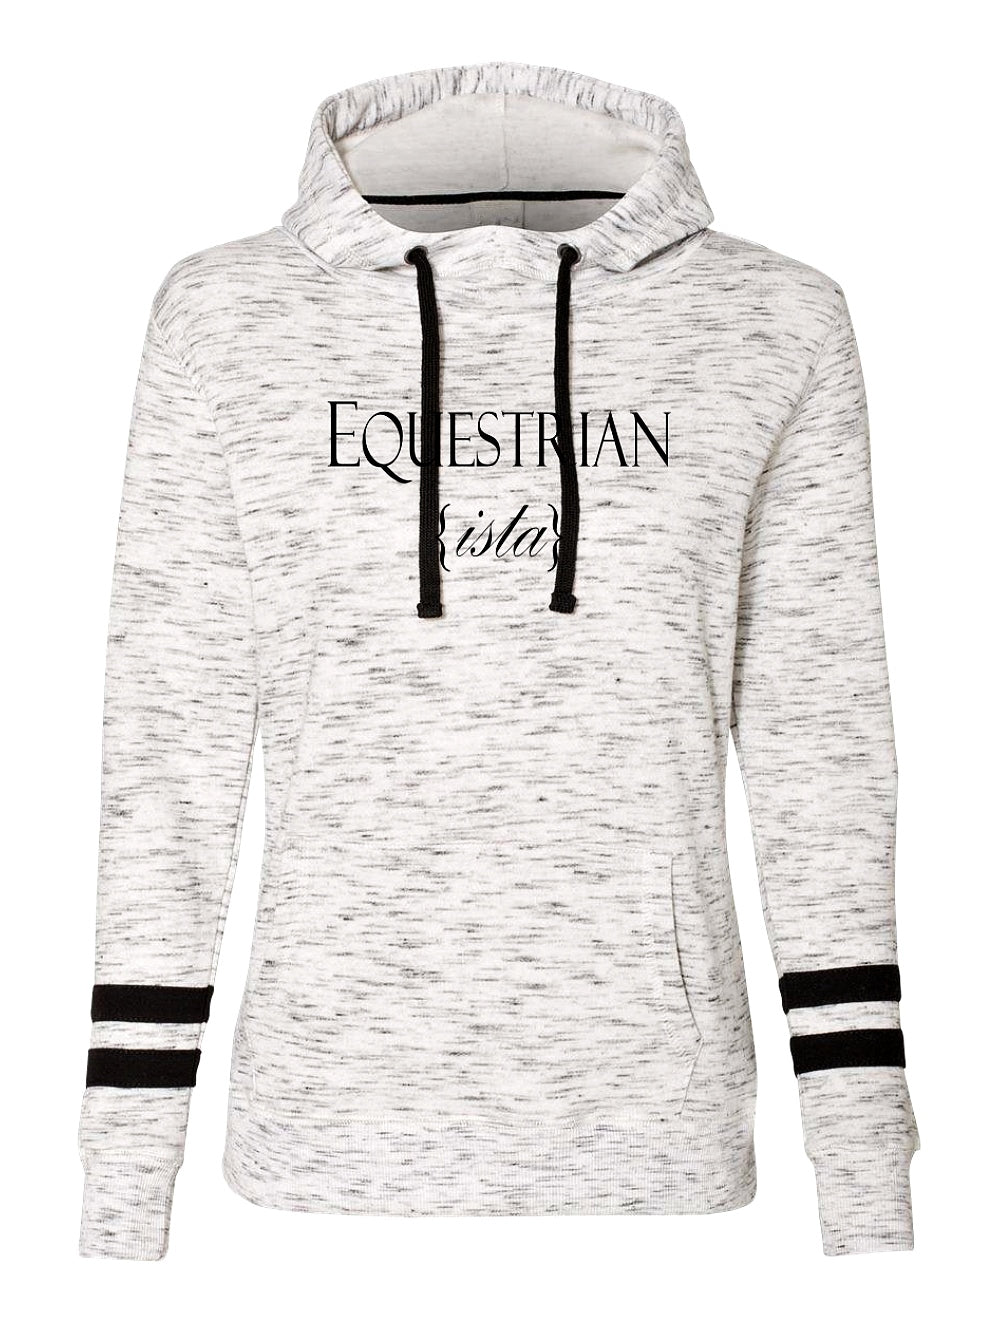 Women's Equestrian Riding Hoodie Fleece by Equestrianista.